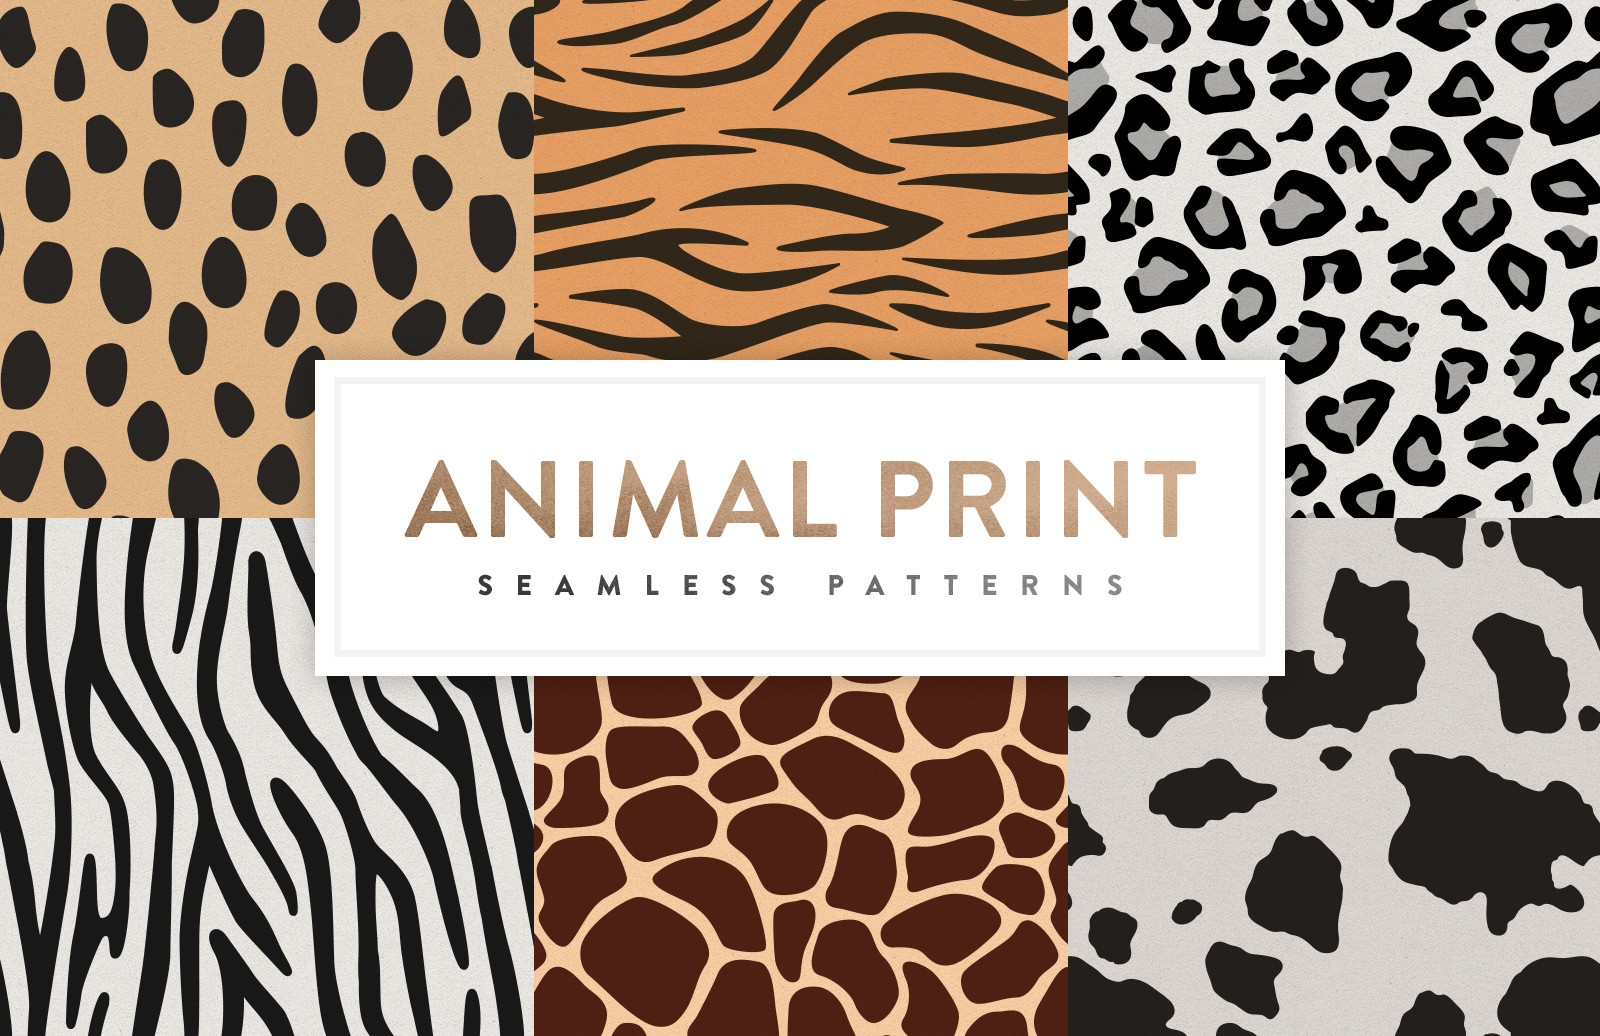 Seamless Animal Print Patterns